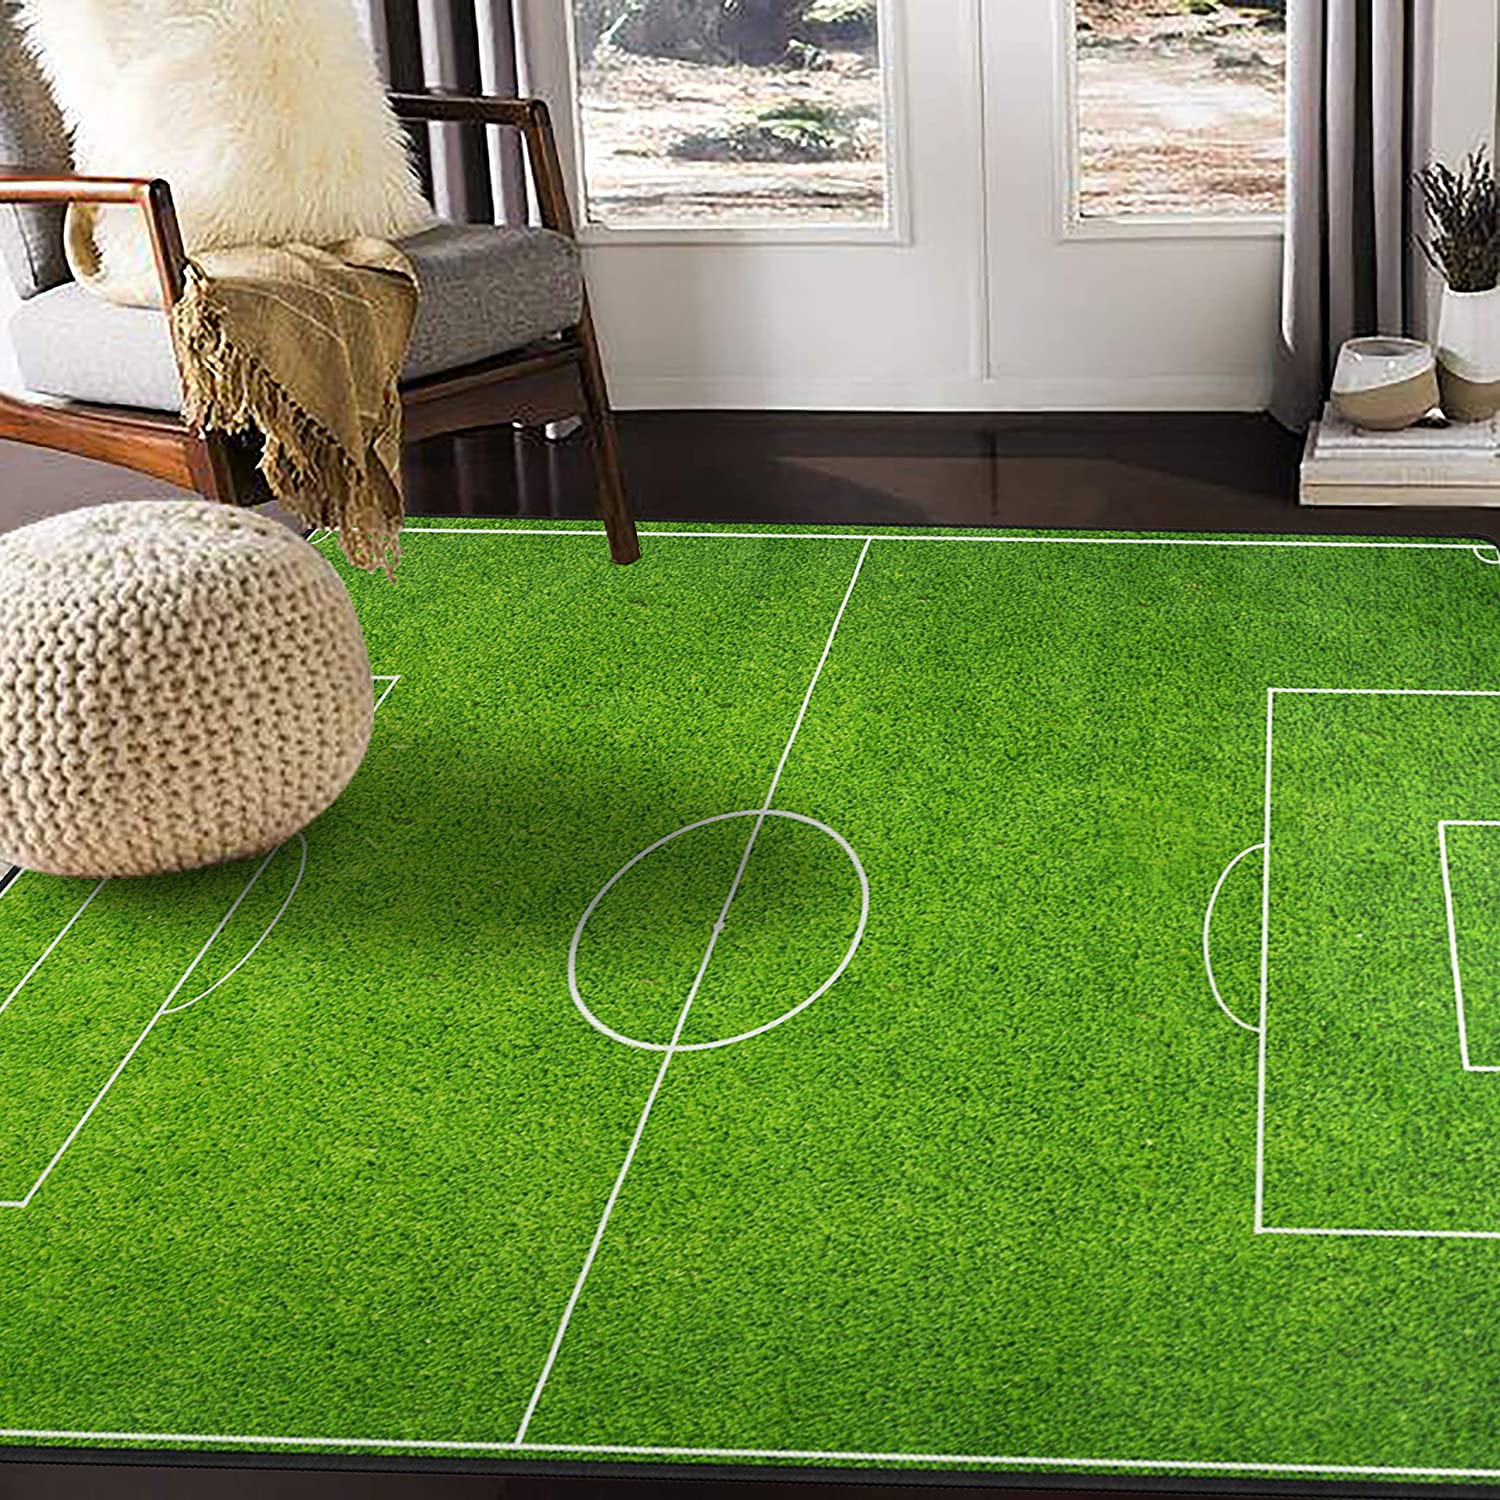 ALAZA Soccer Green Football Stadium Area Rug Rugs Mat for Living Room Bedroom 7\'x5\' 91XvVuIowlL